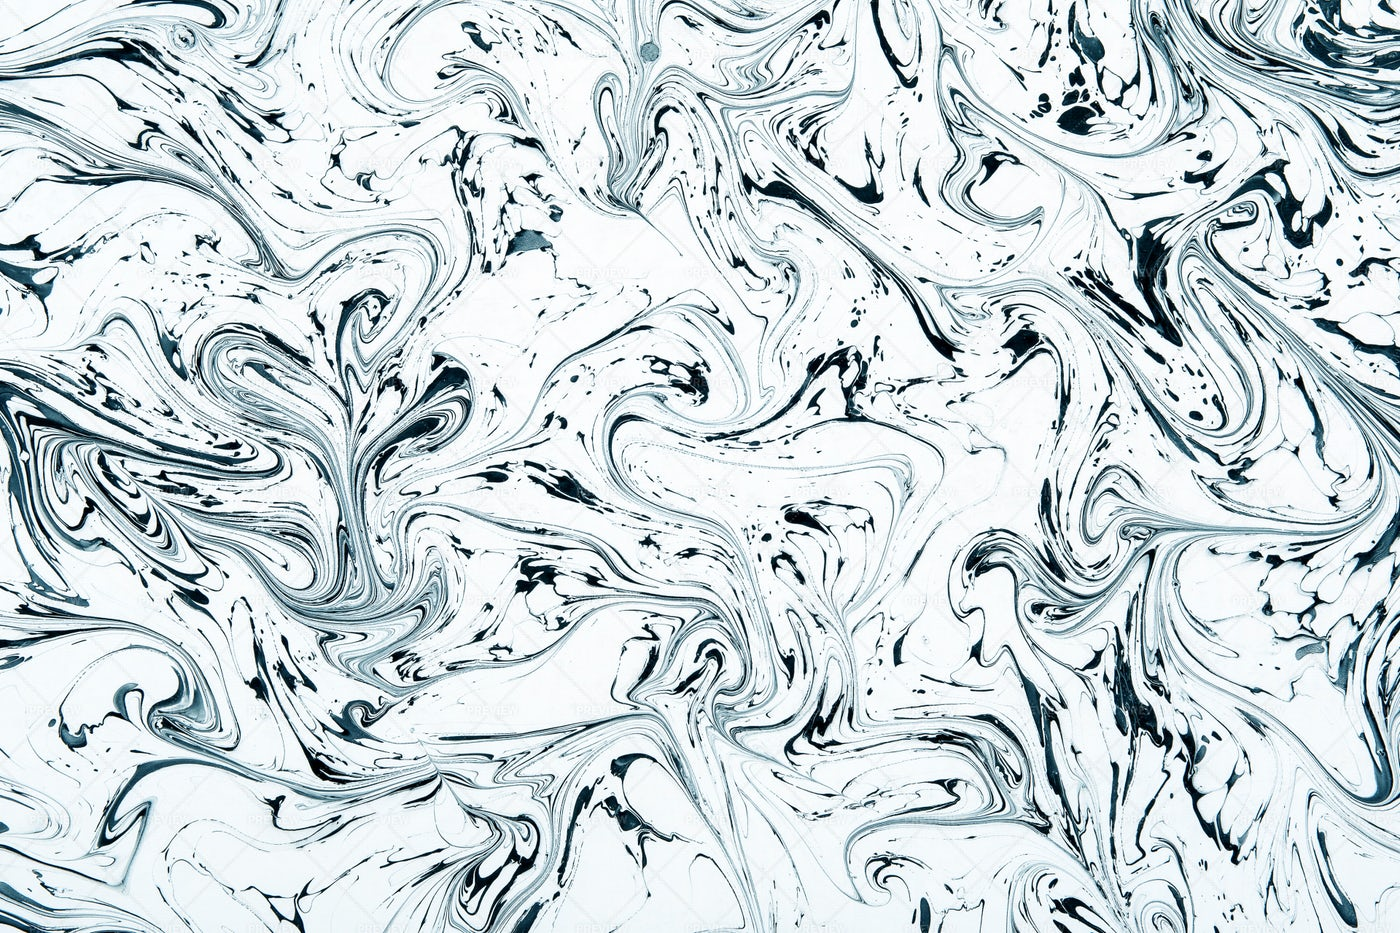 Black And White Patterns: Stock Photos